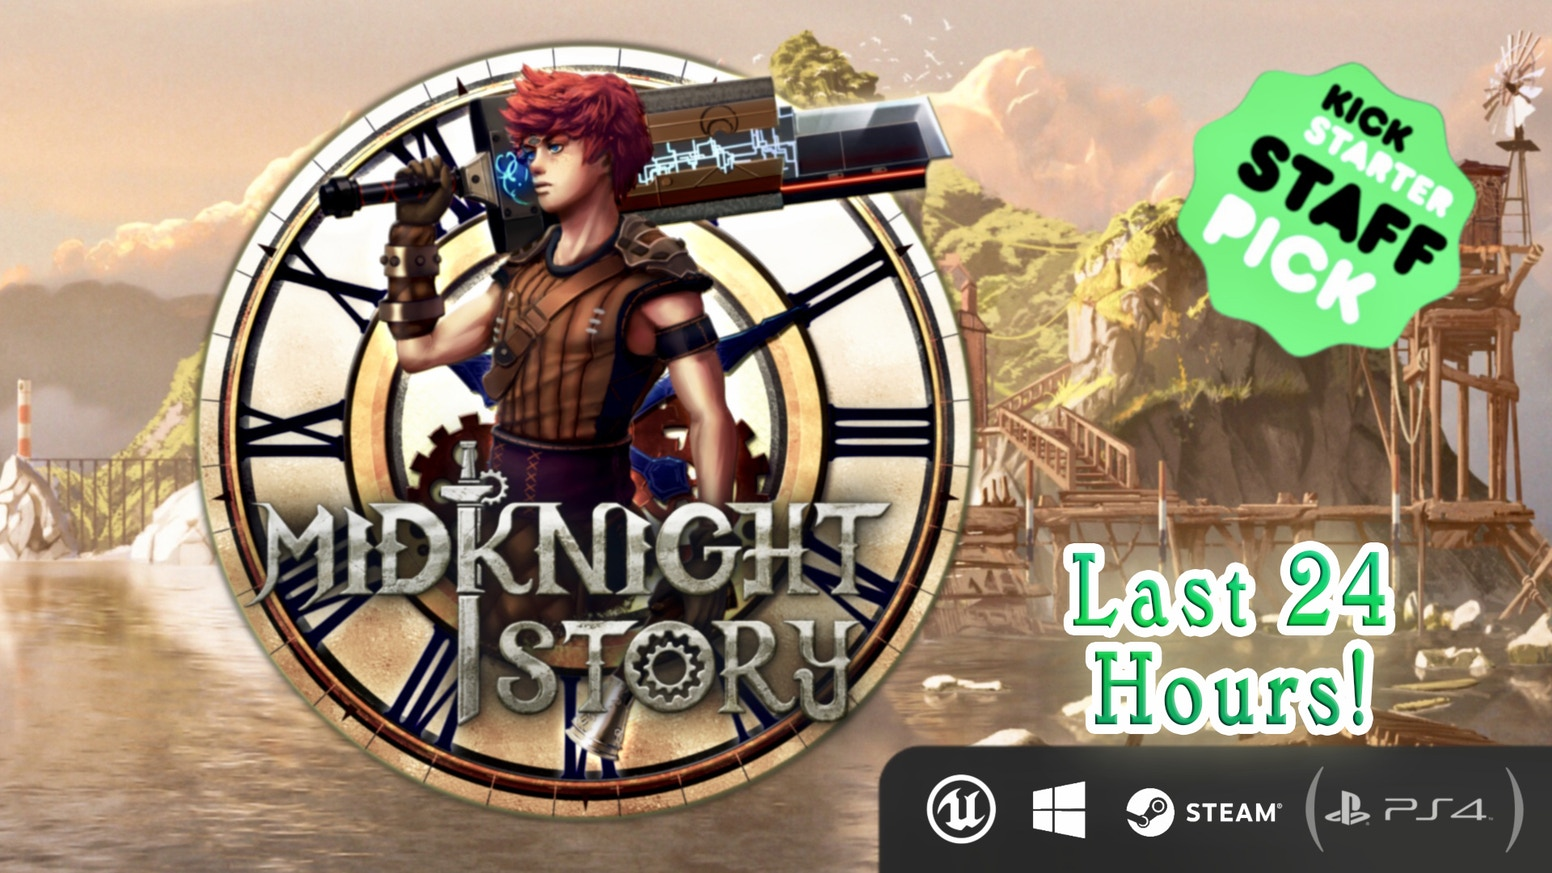 A story driven action adventure RPG set in a steampunk & fantasy open world for PC! Missed out on MidKnight Story's Kickstarter campaign? Late backing options are now available!